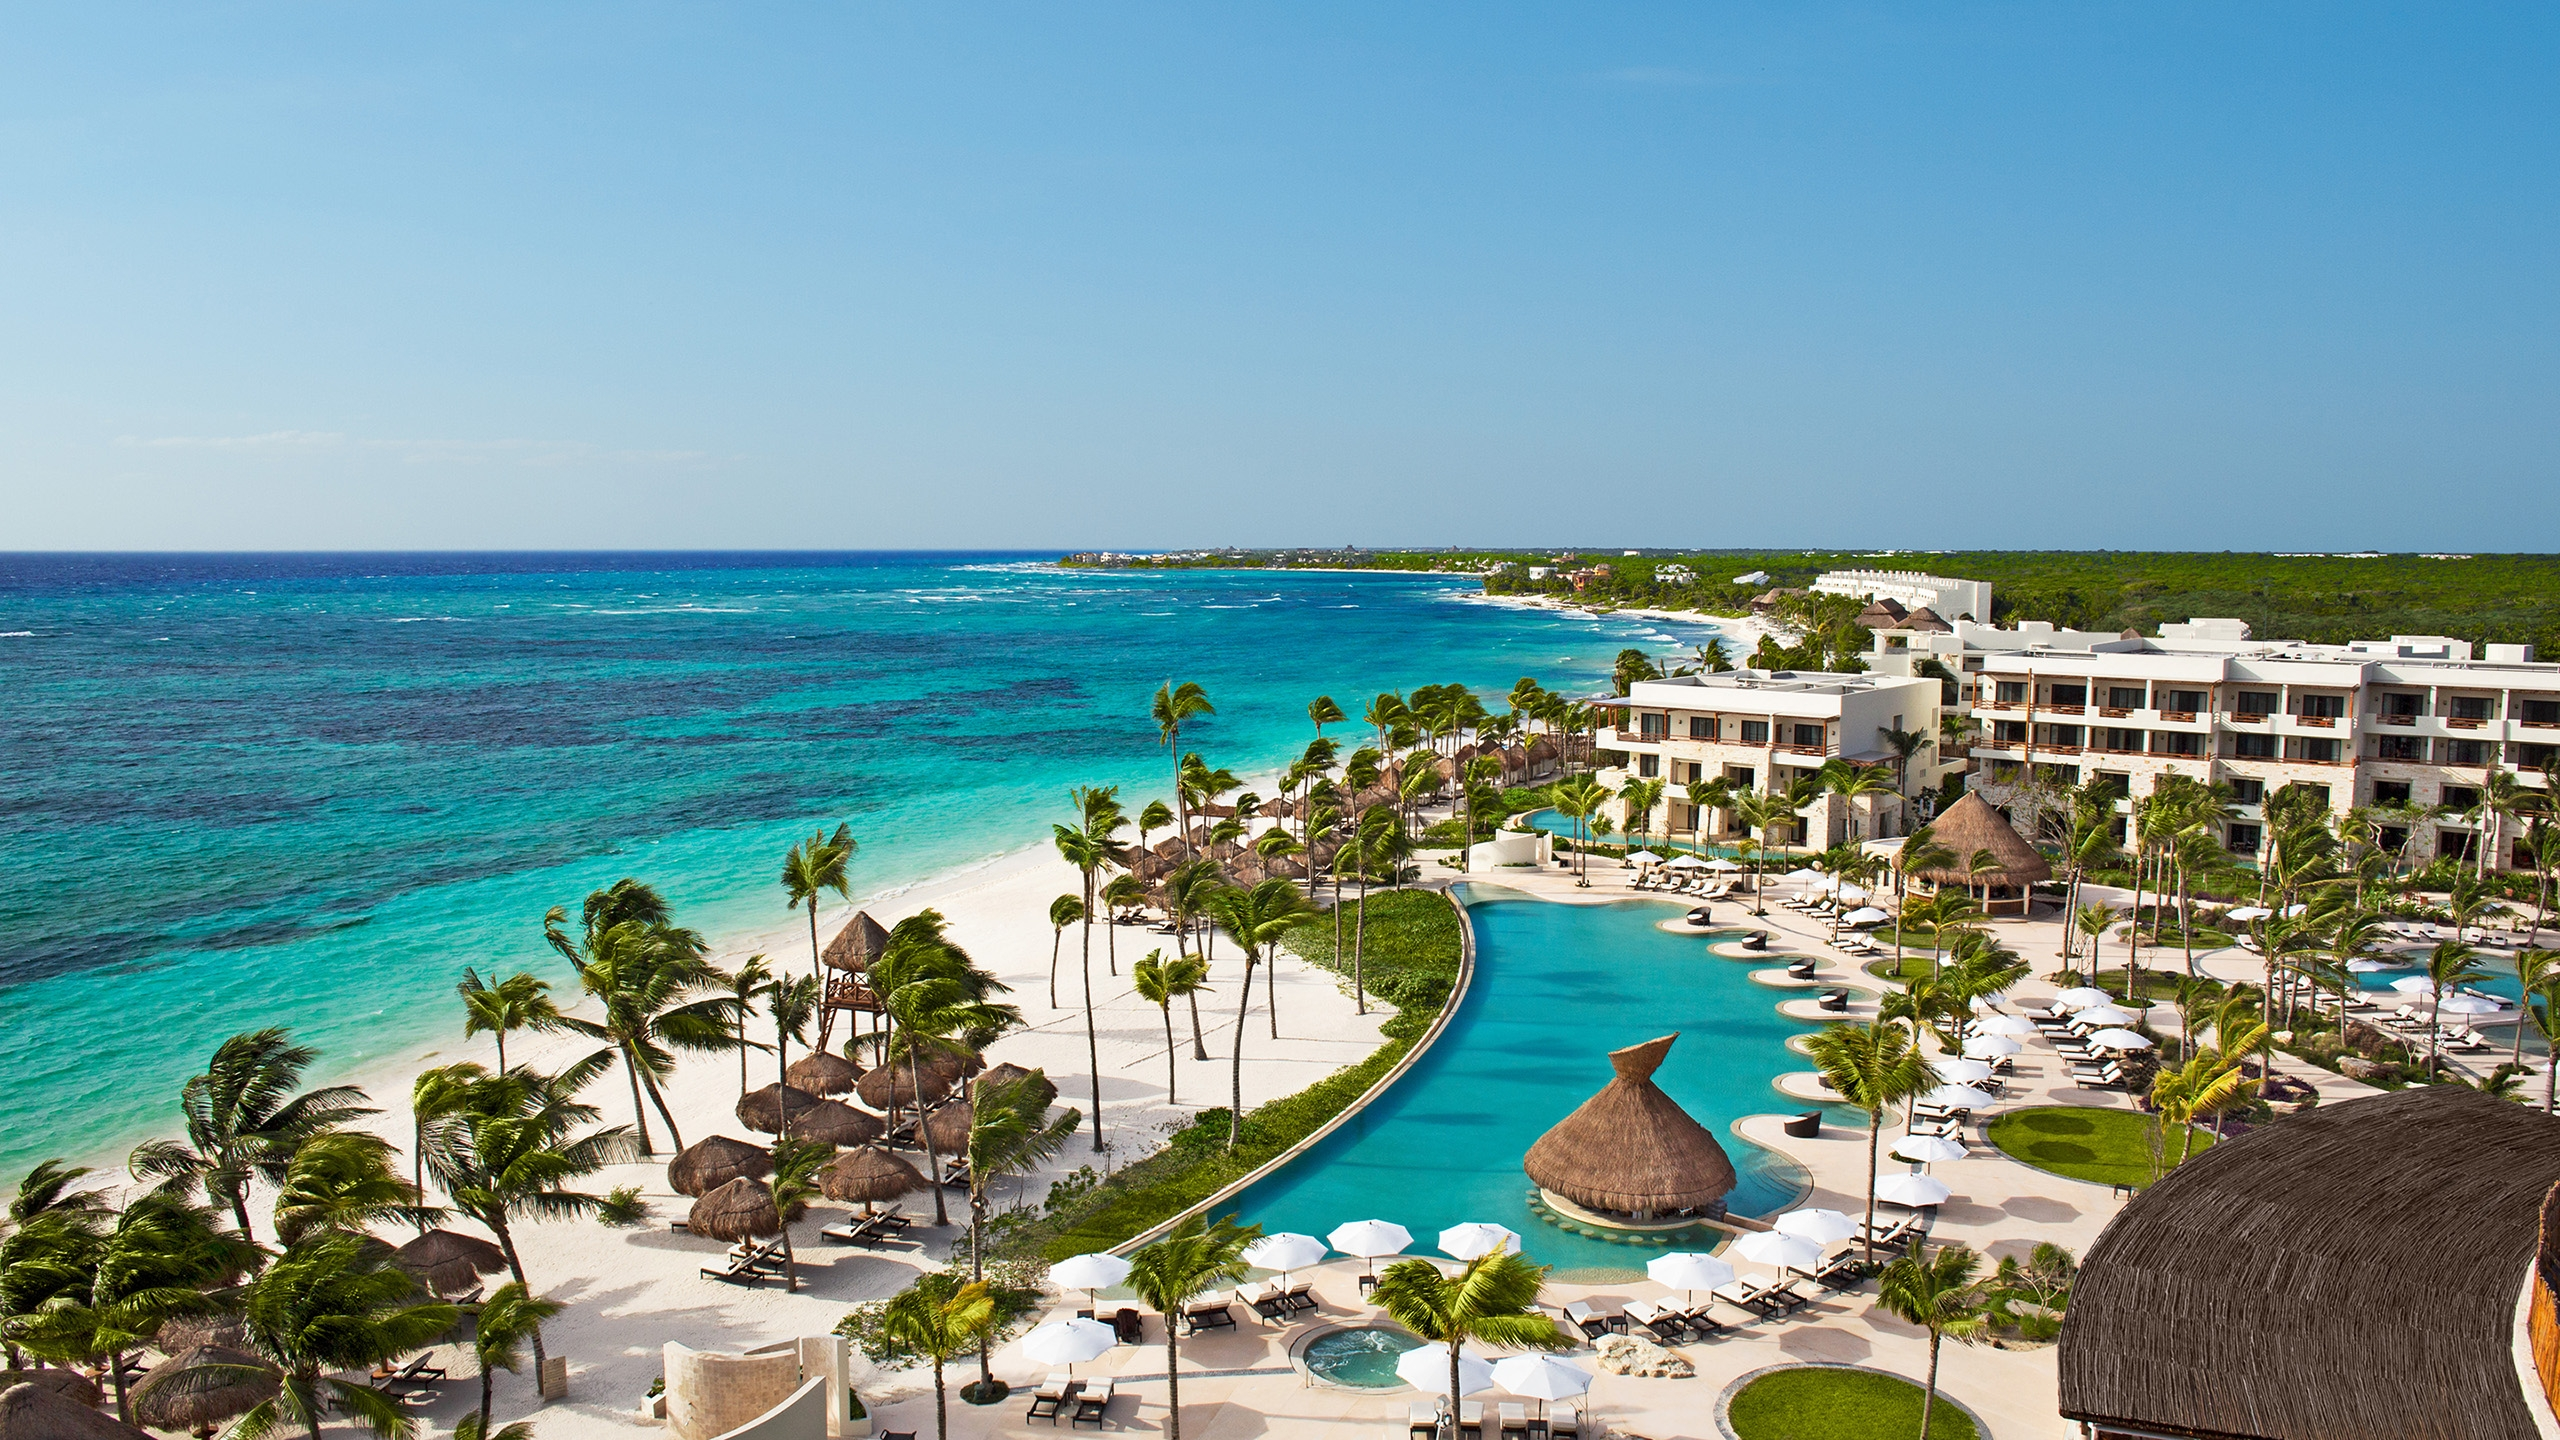 Here are the 5 reasons why we canceled our trip to Mexico - and we're super happy about it!